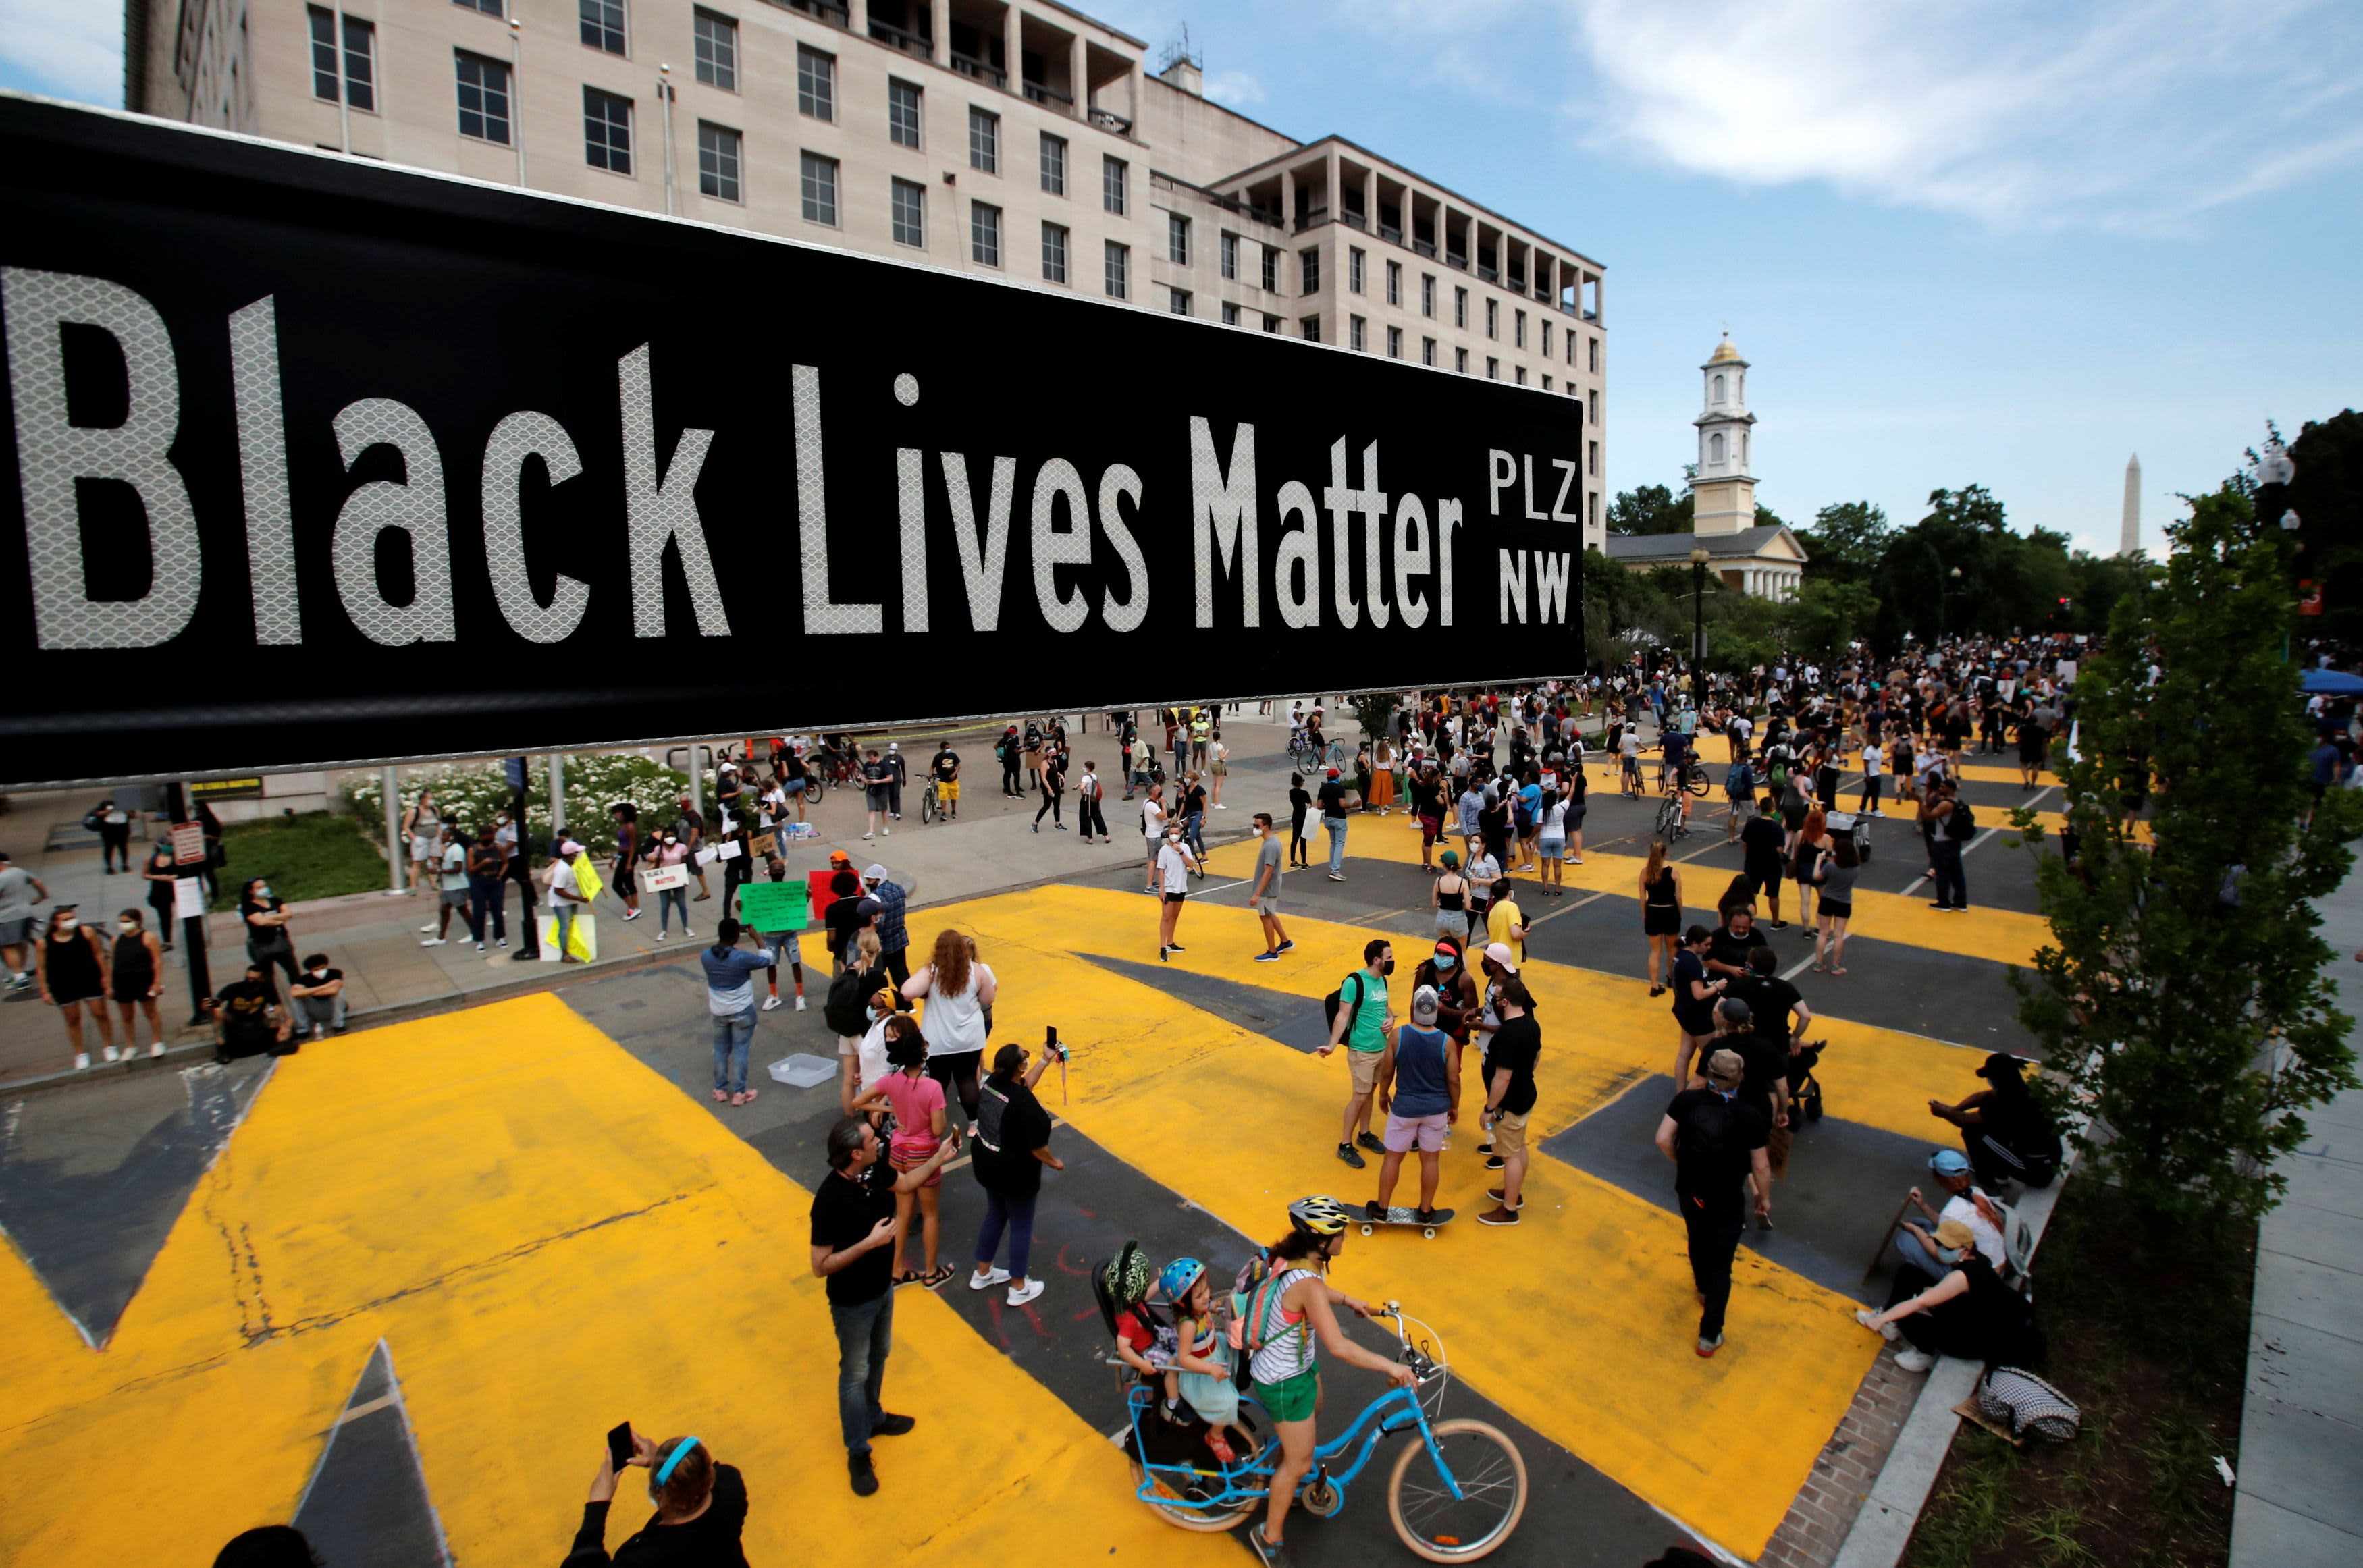 Here's what tech companies have said they'll do to fight racism in wake of George Floyd protests